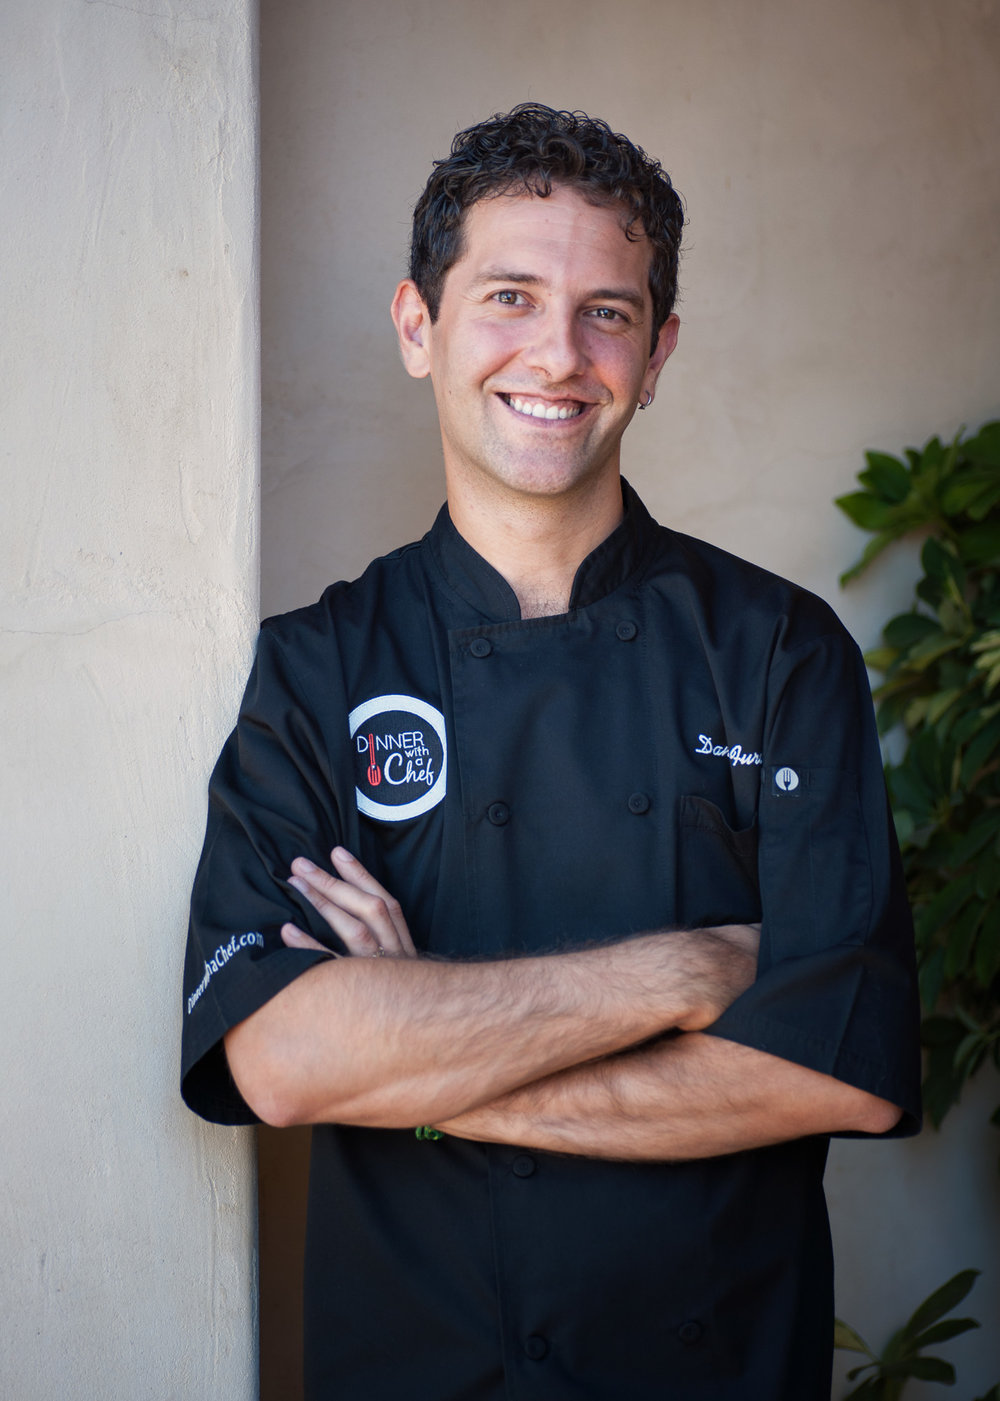 Daniel Furdui | Chef | Dinner with a Chef